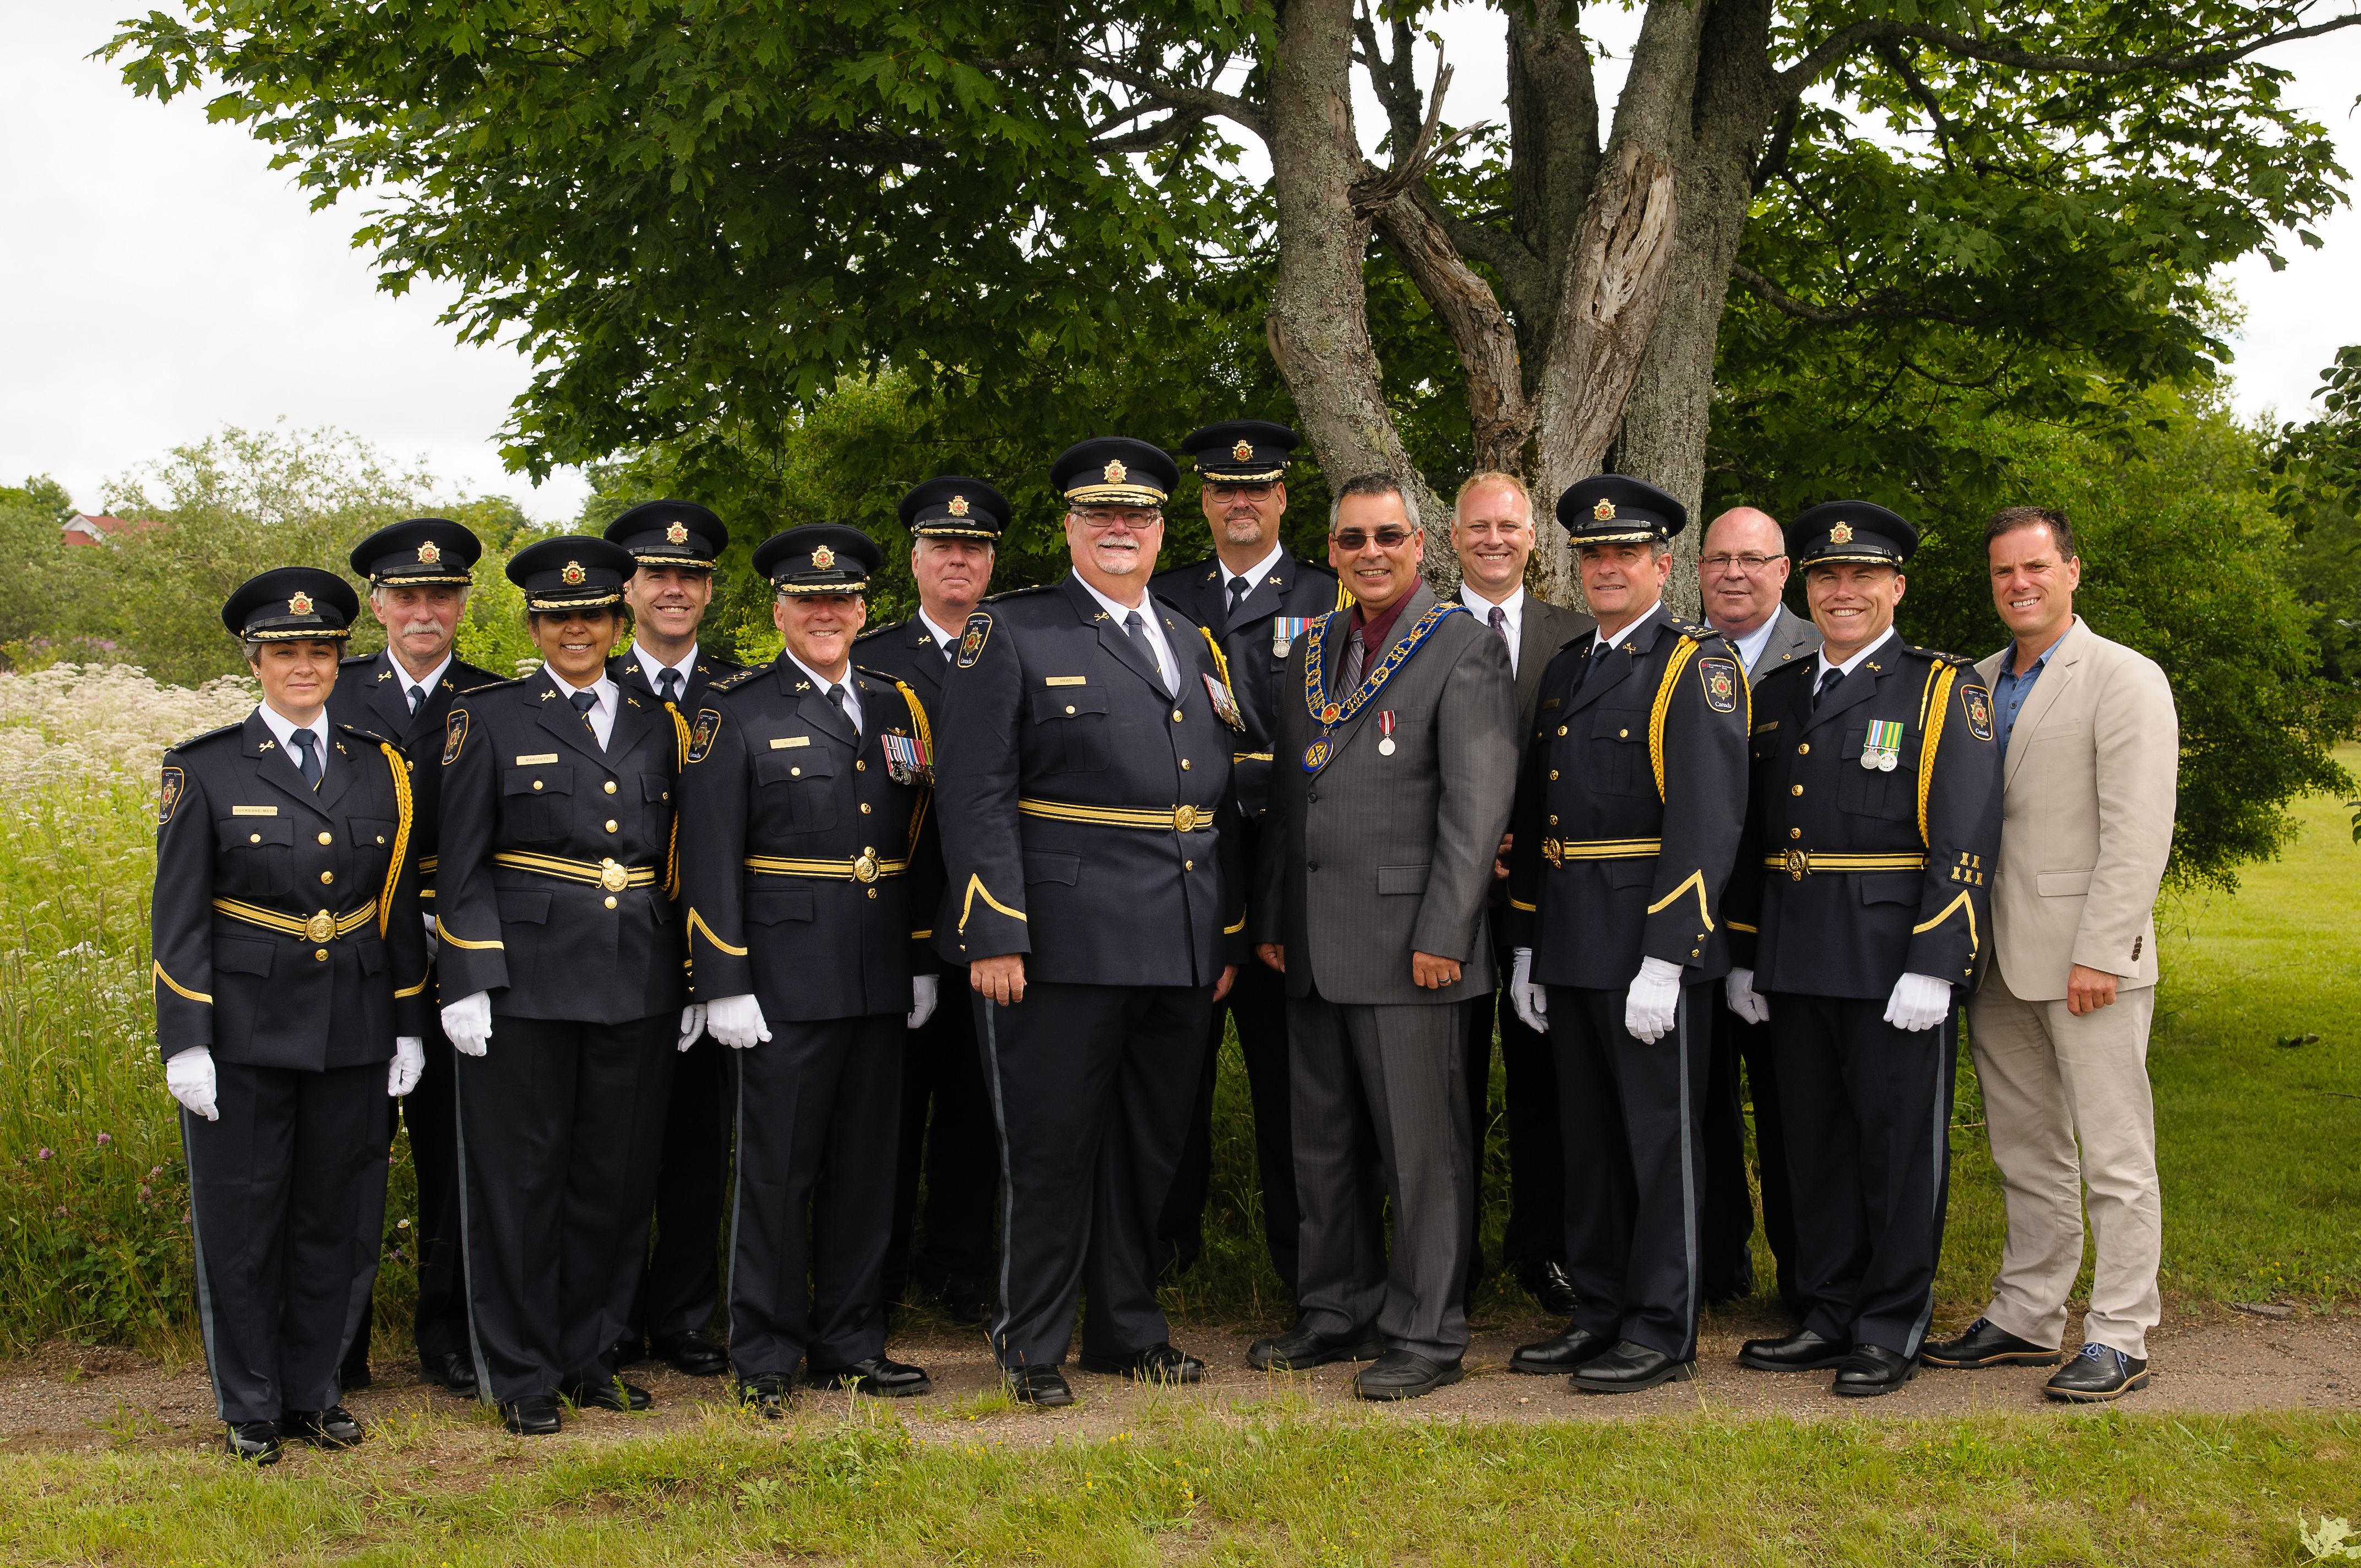 A group photo of CSC Commissioner Don Head standing with CSC employees in ceremonial uniform and the mayor of Dorchester Village.